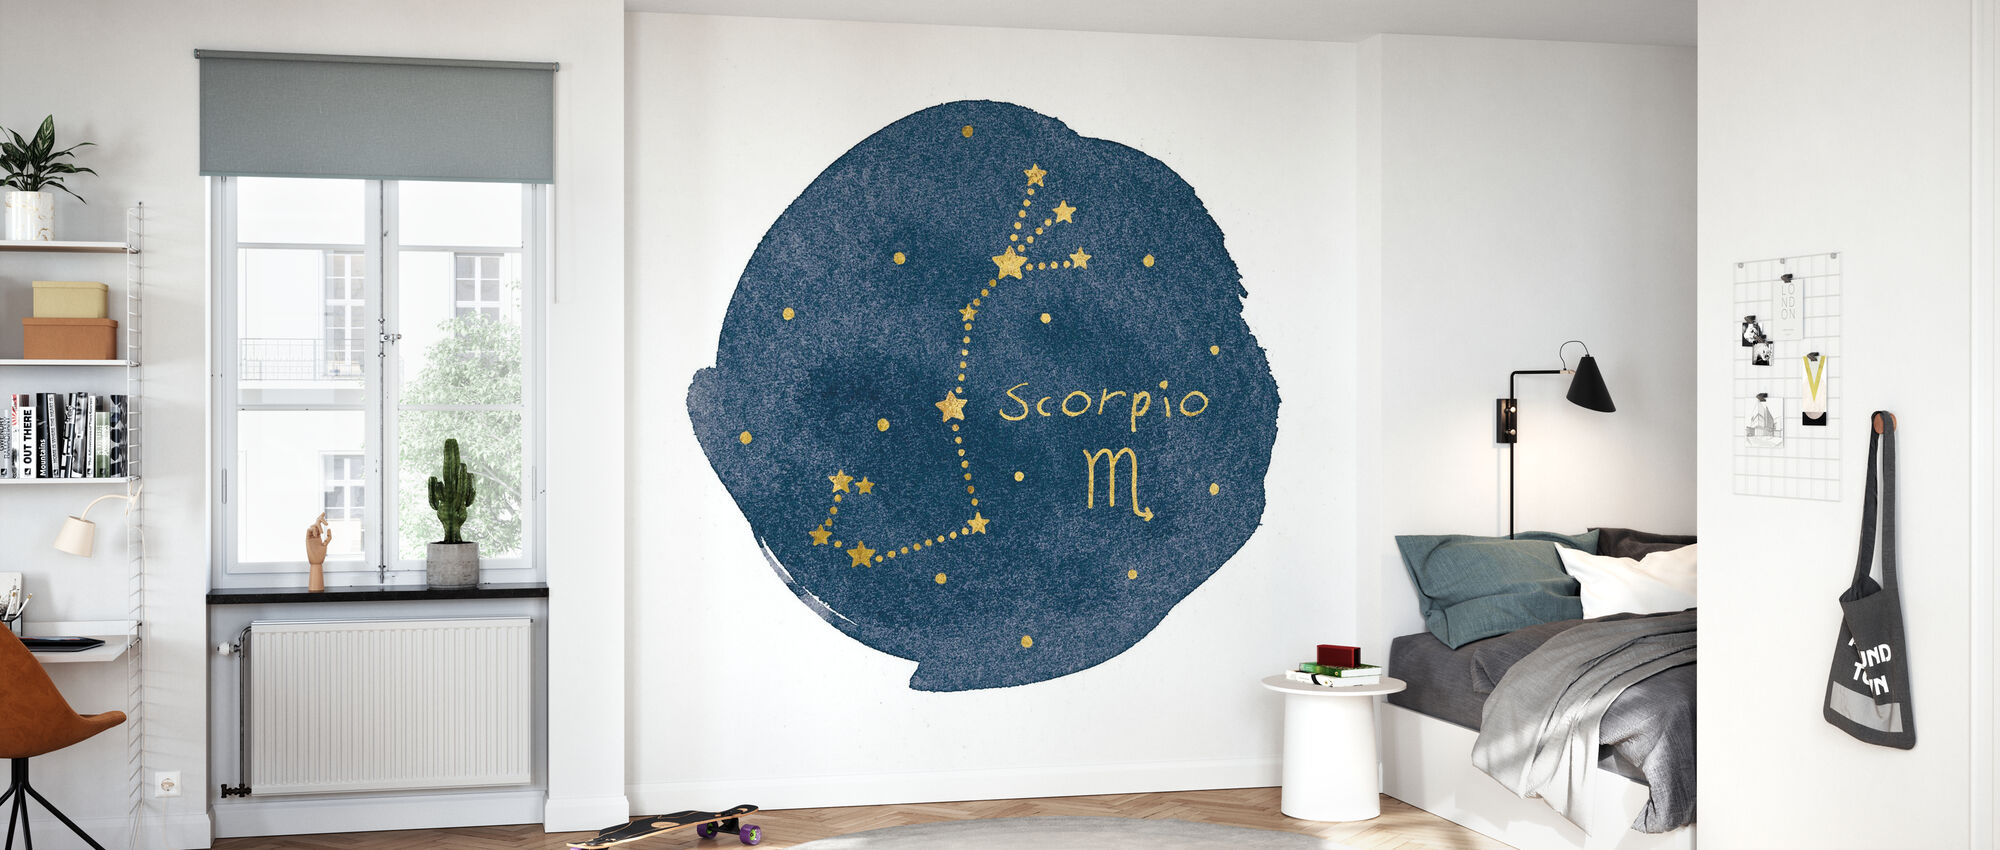 Horoskop Skorpion - Tapete - Kinderzimmer